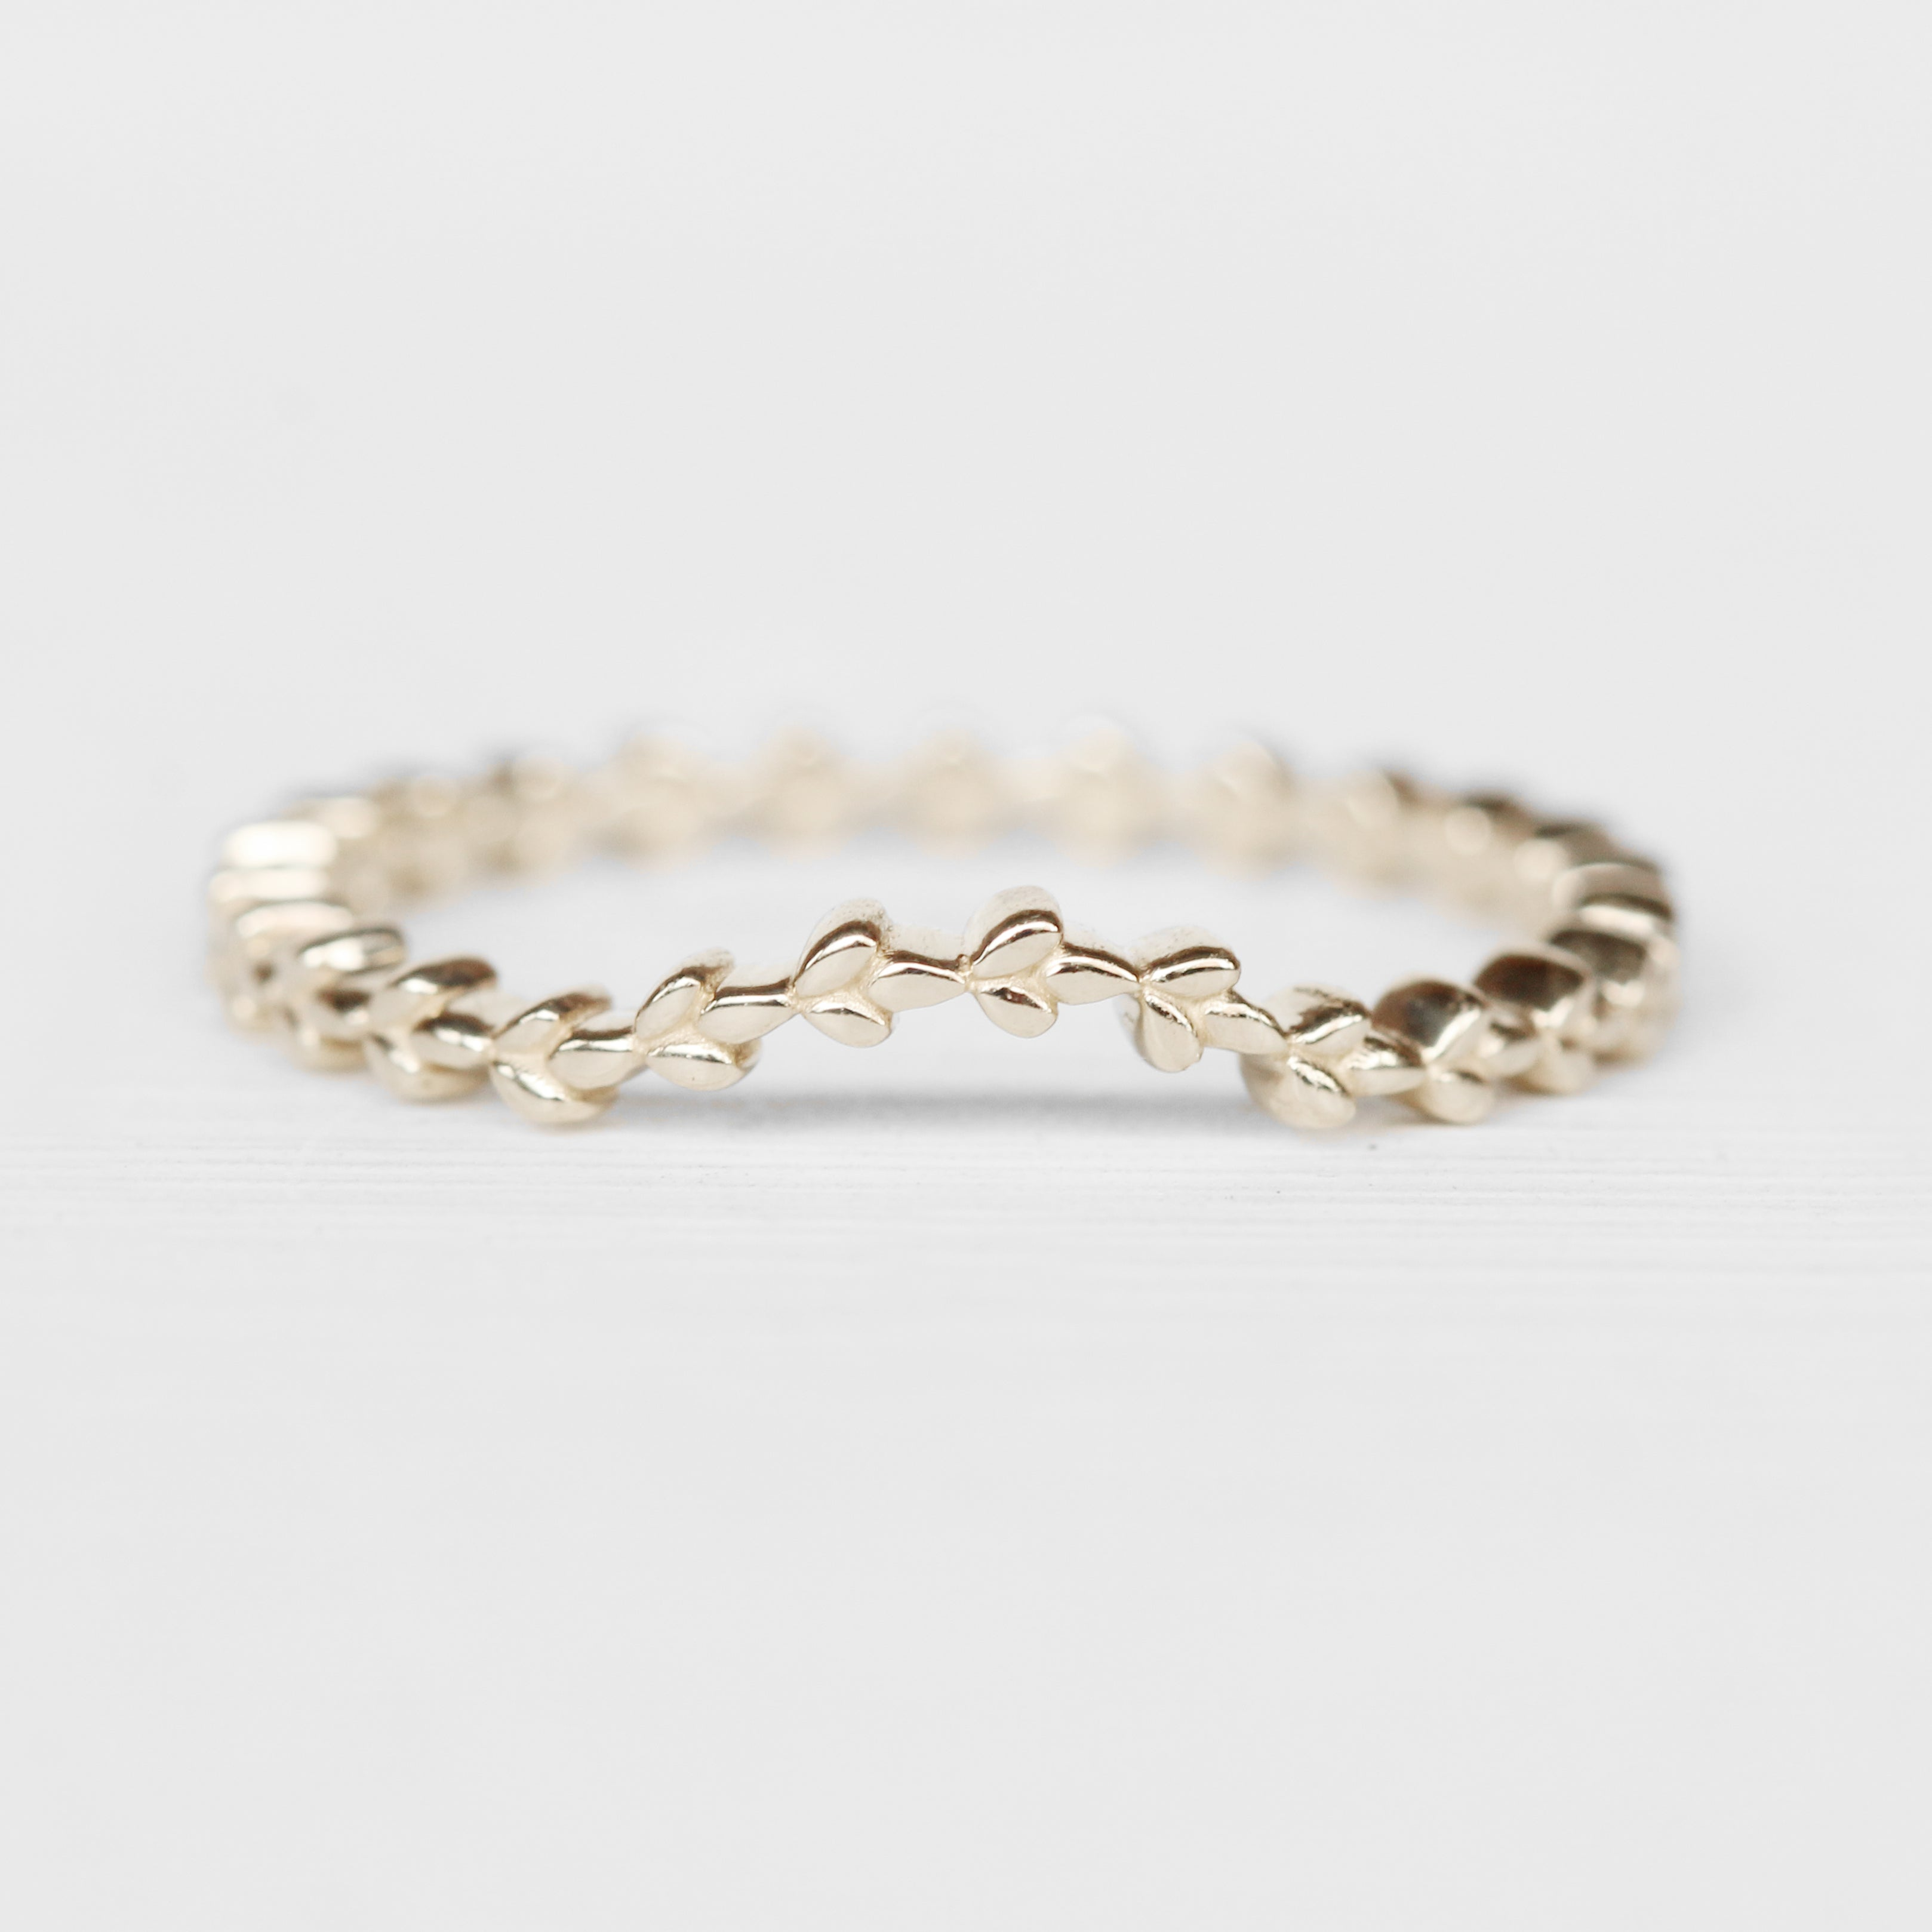 June - Floral leaf Contoured Wedding Stacking Band in Your Choice of 14K Gold - Midwinter Co. Alternative Bridal Rings and Modern Fine Jewelry